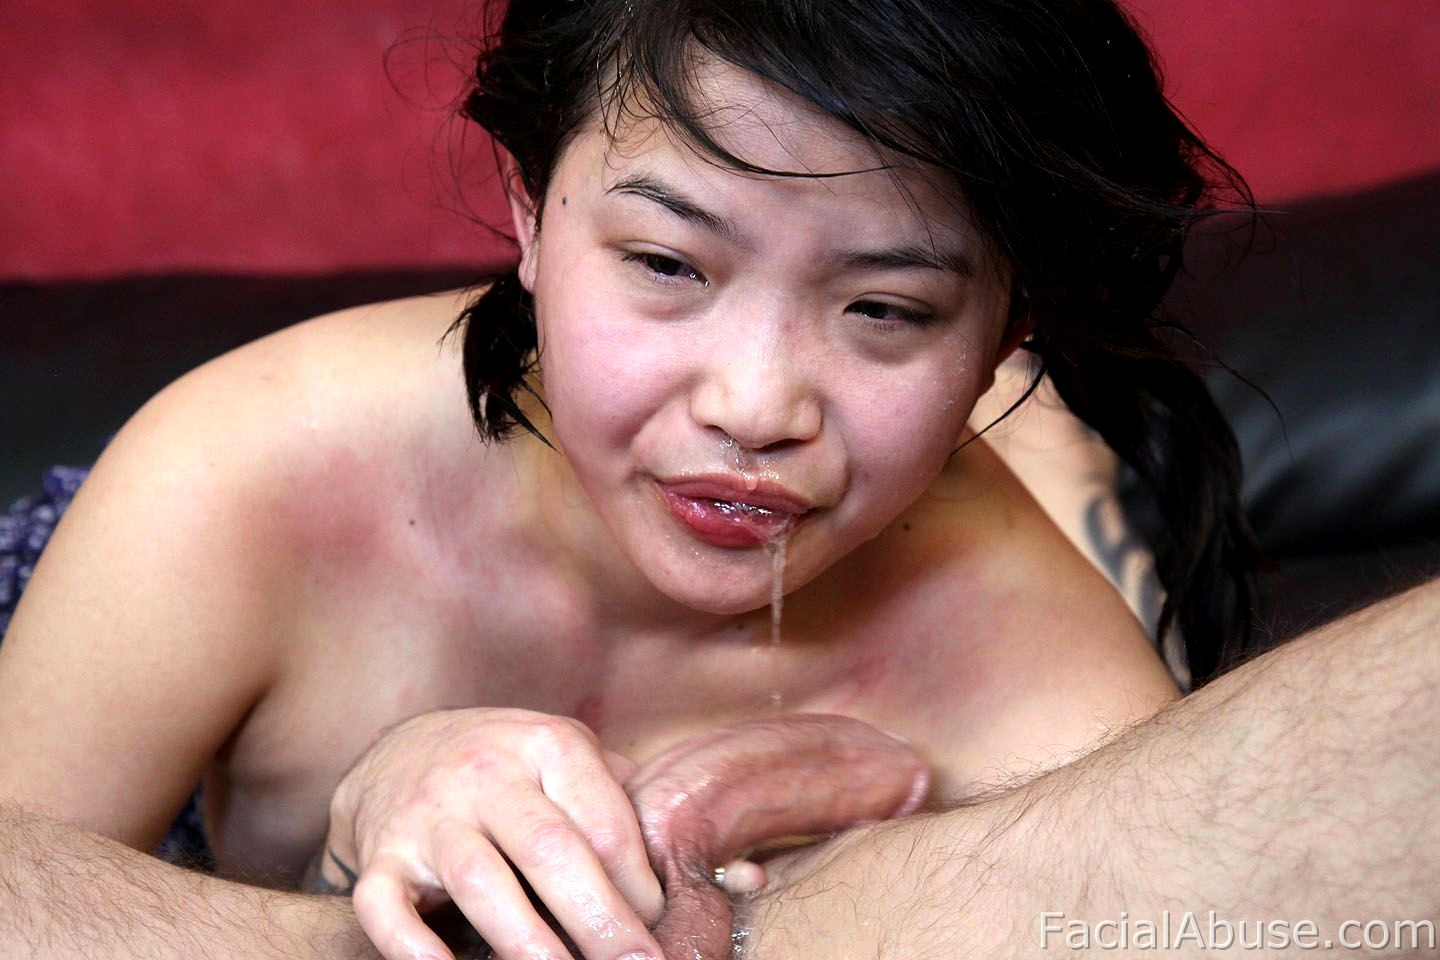 Asian girl being choked sex asian sexy